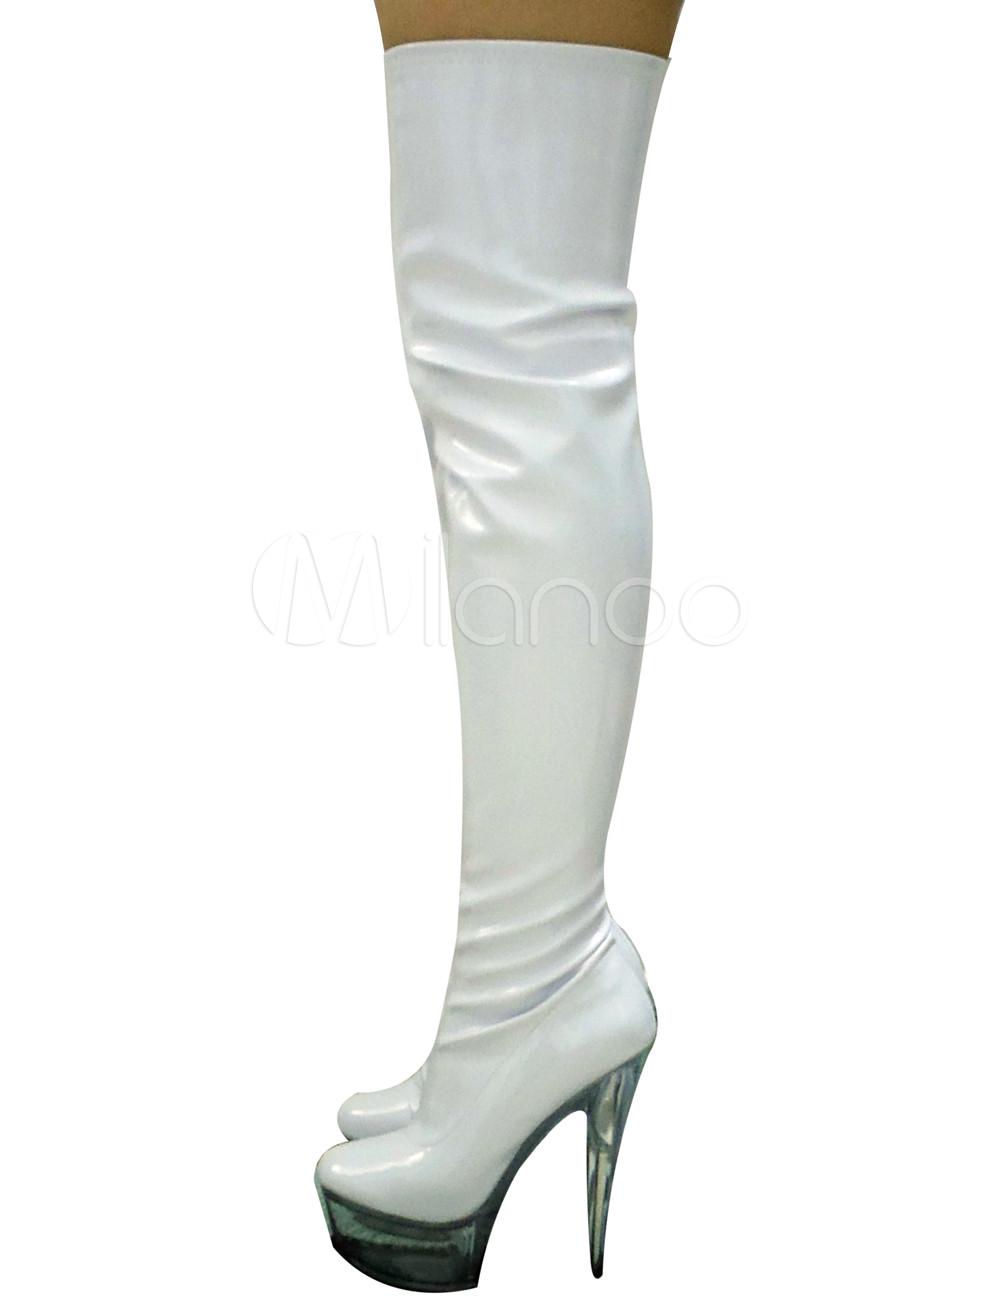 Buy Red Zip Closure Platform High Heel Patent Leather Womens Thigh High Sexy Boots for $86.44 in Milanoo store